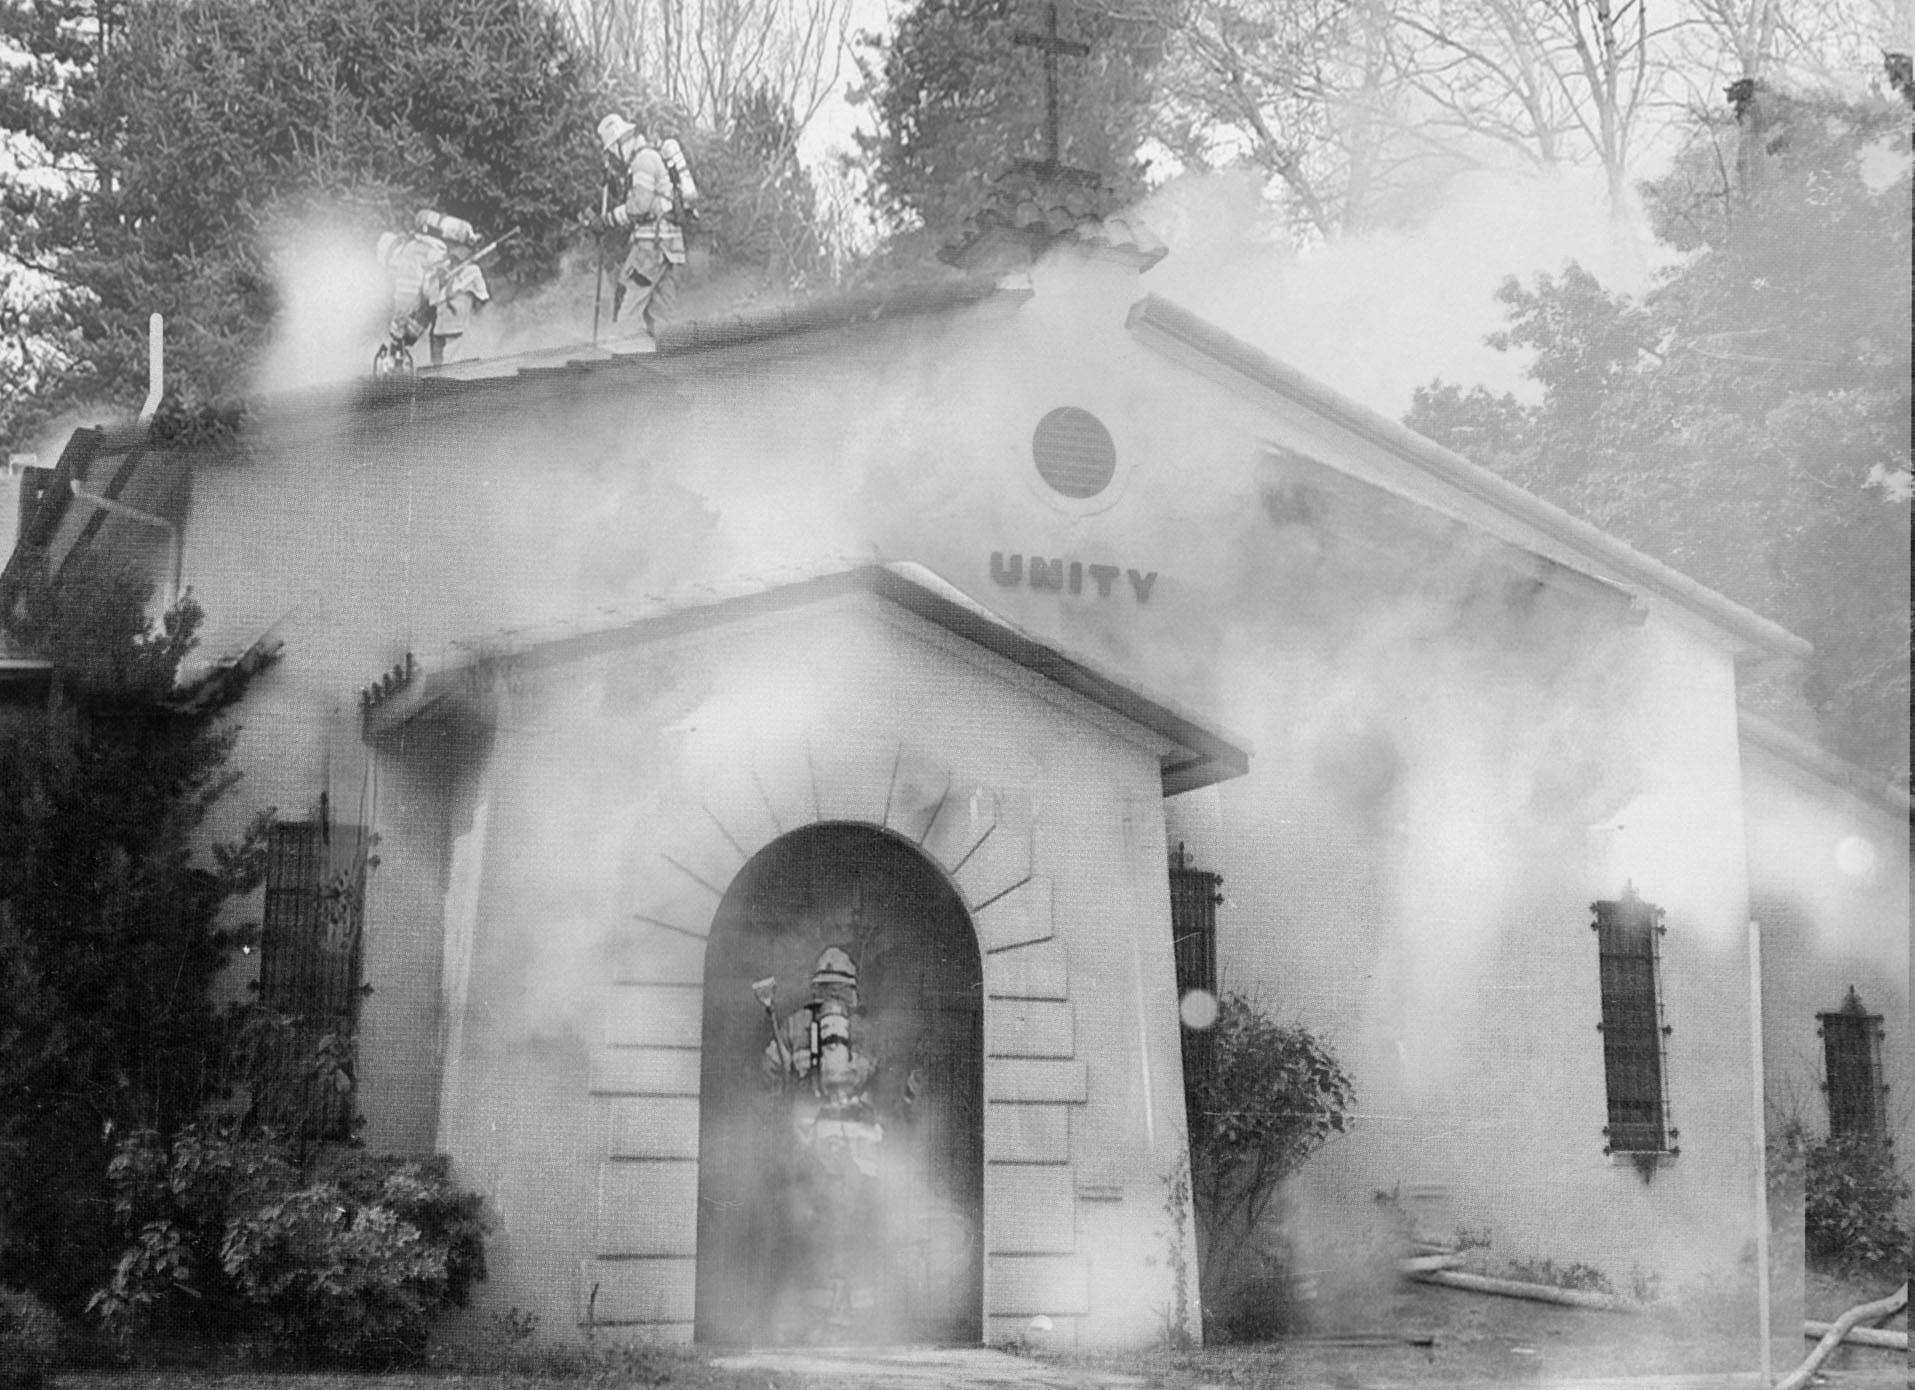 Fire at the Unity Temple